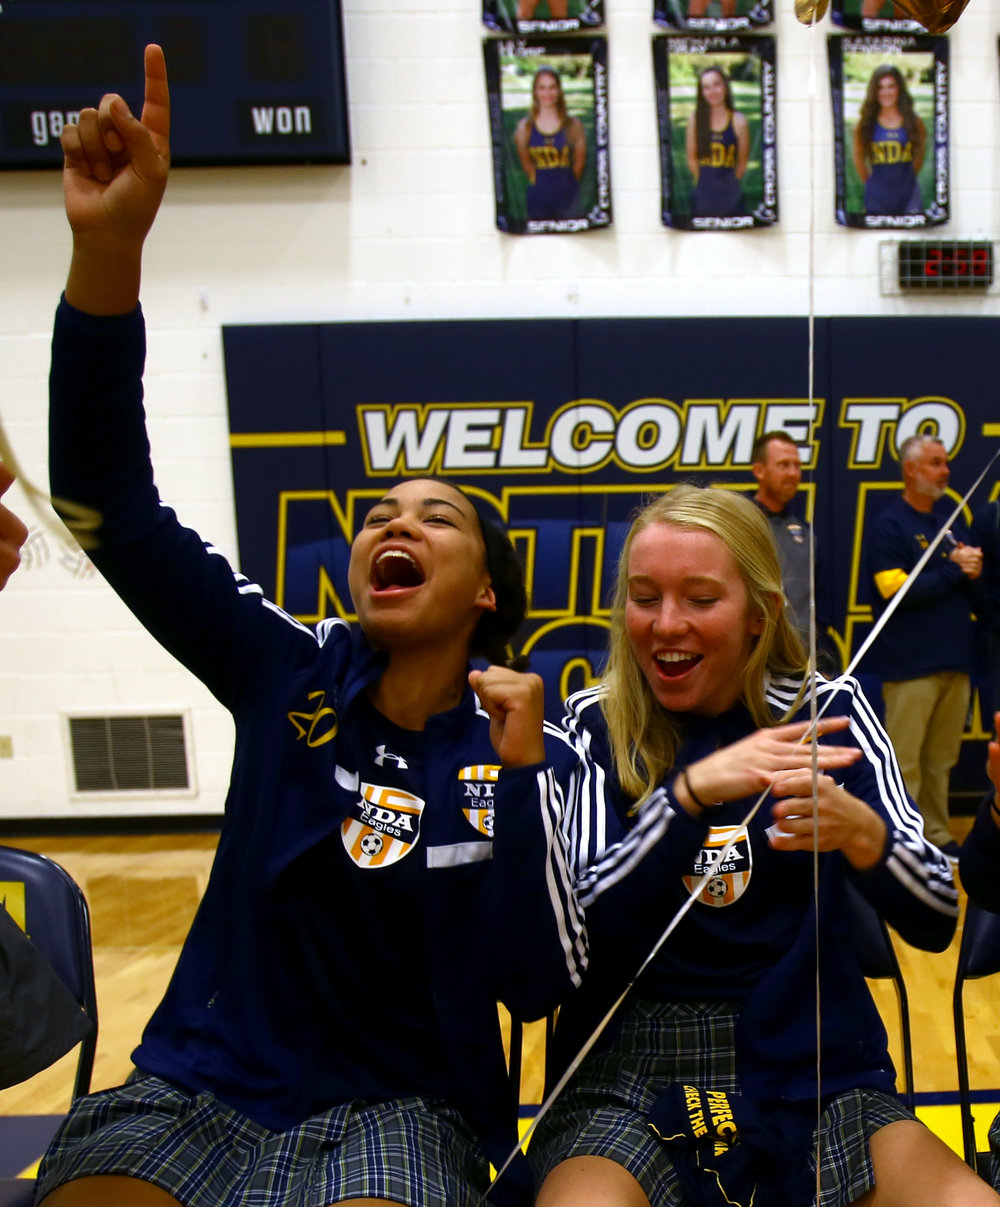 Junior defender Lexa Bauer, left, and senior forward Grace Petrie cheer during a pep rally held in Notre Dame Academy's gym in Toledo for the varsity soccer team before they head to the OSHAA state semi-final game in Sandusky on Monday, Nov. 7, 2016.